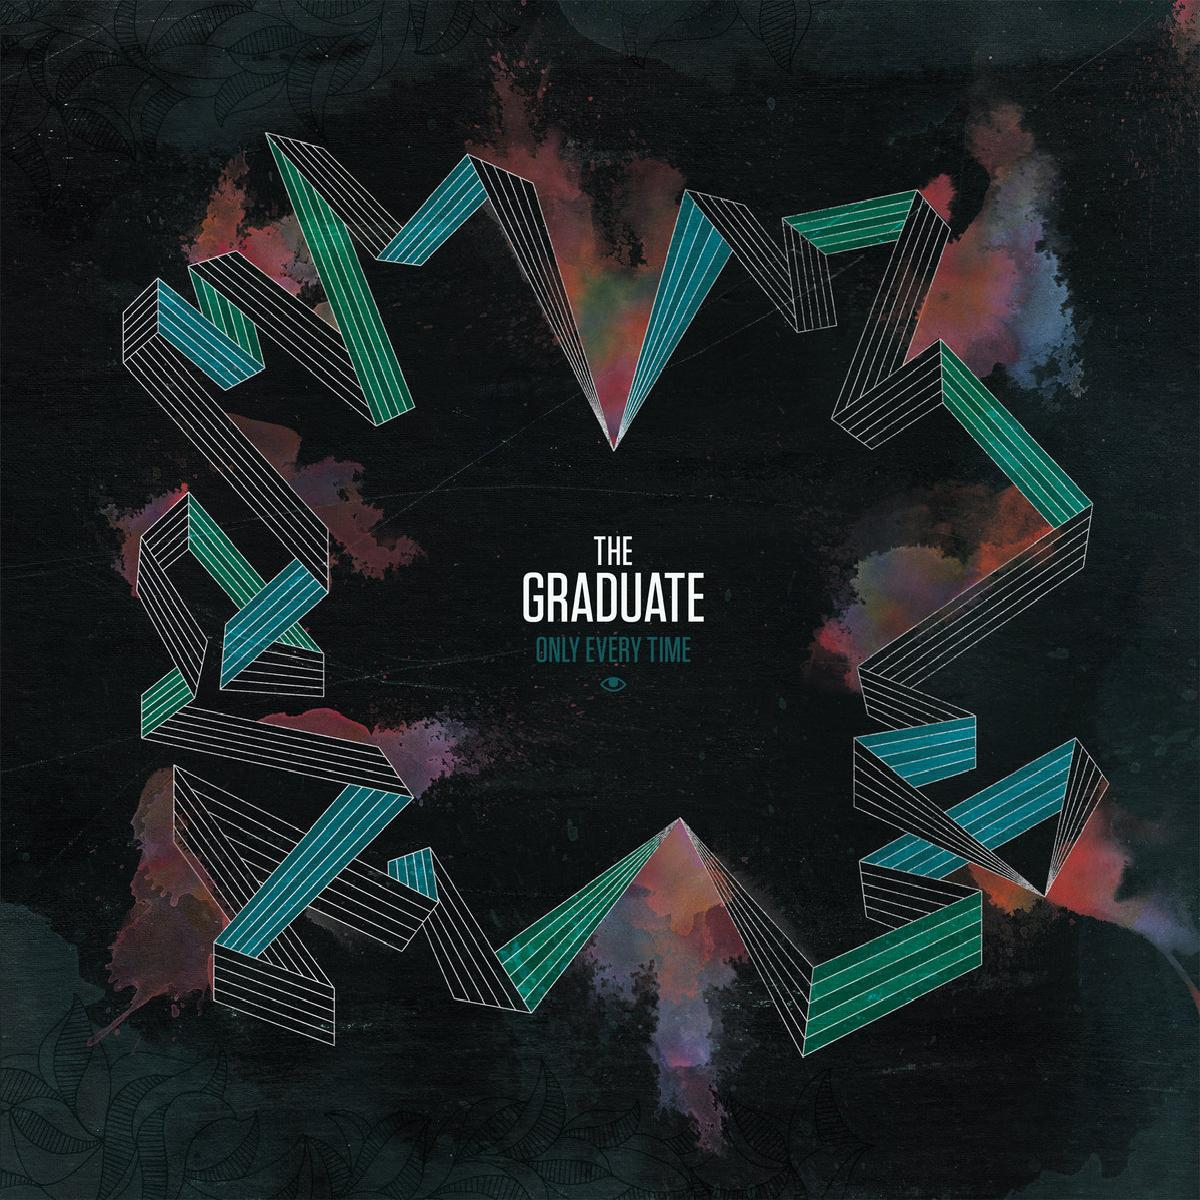 The Graduate - Only Every Time (2010)